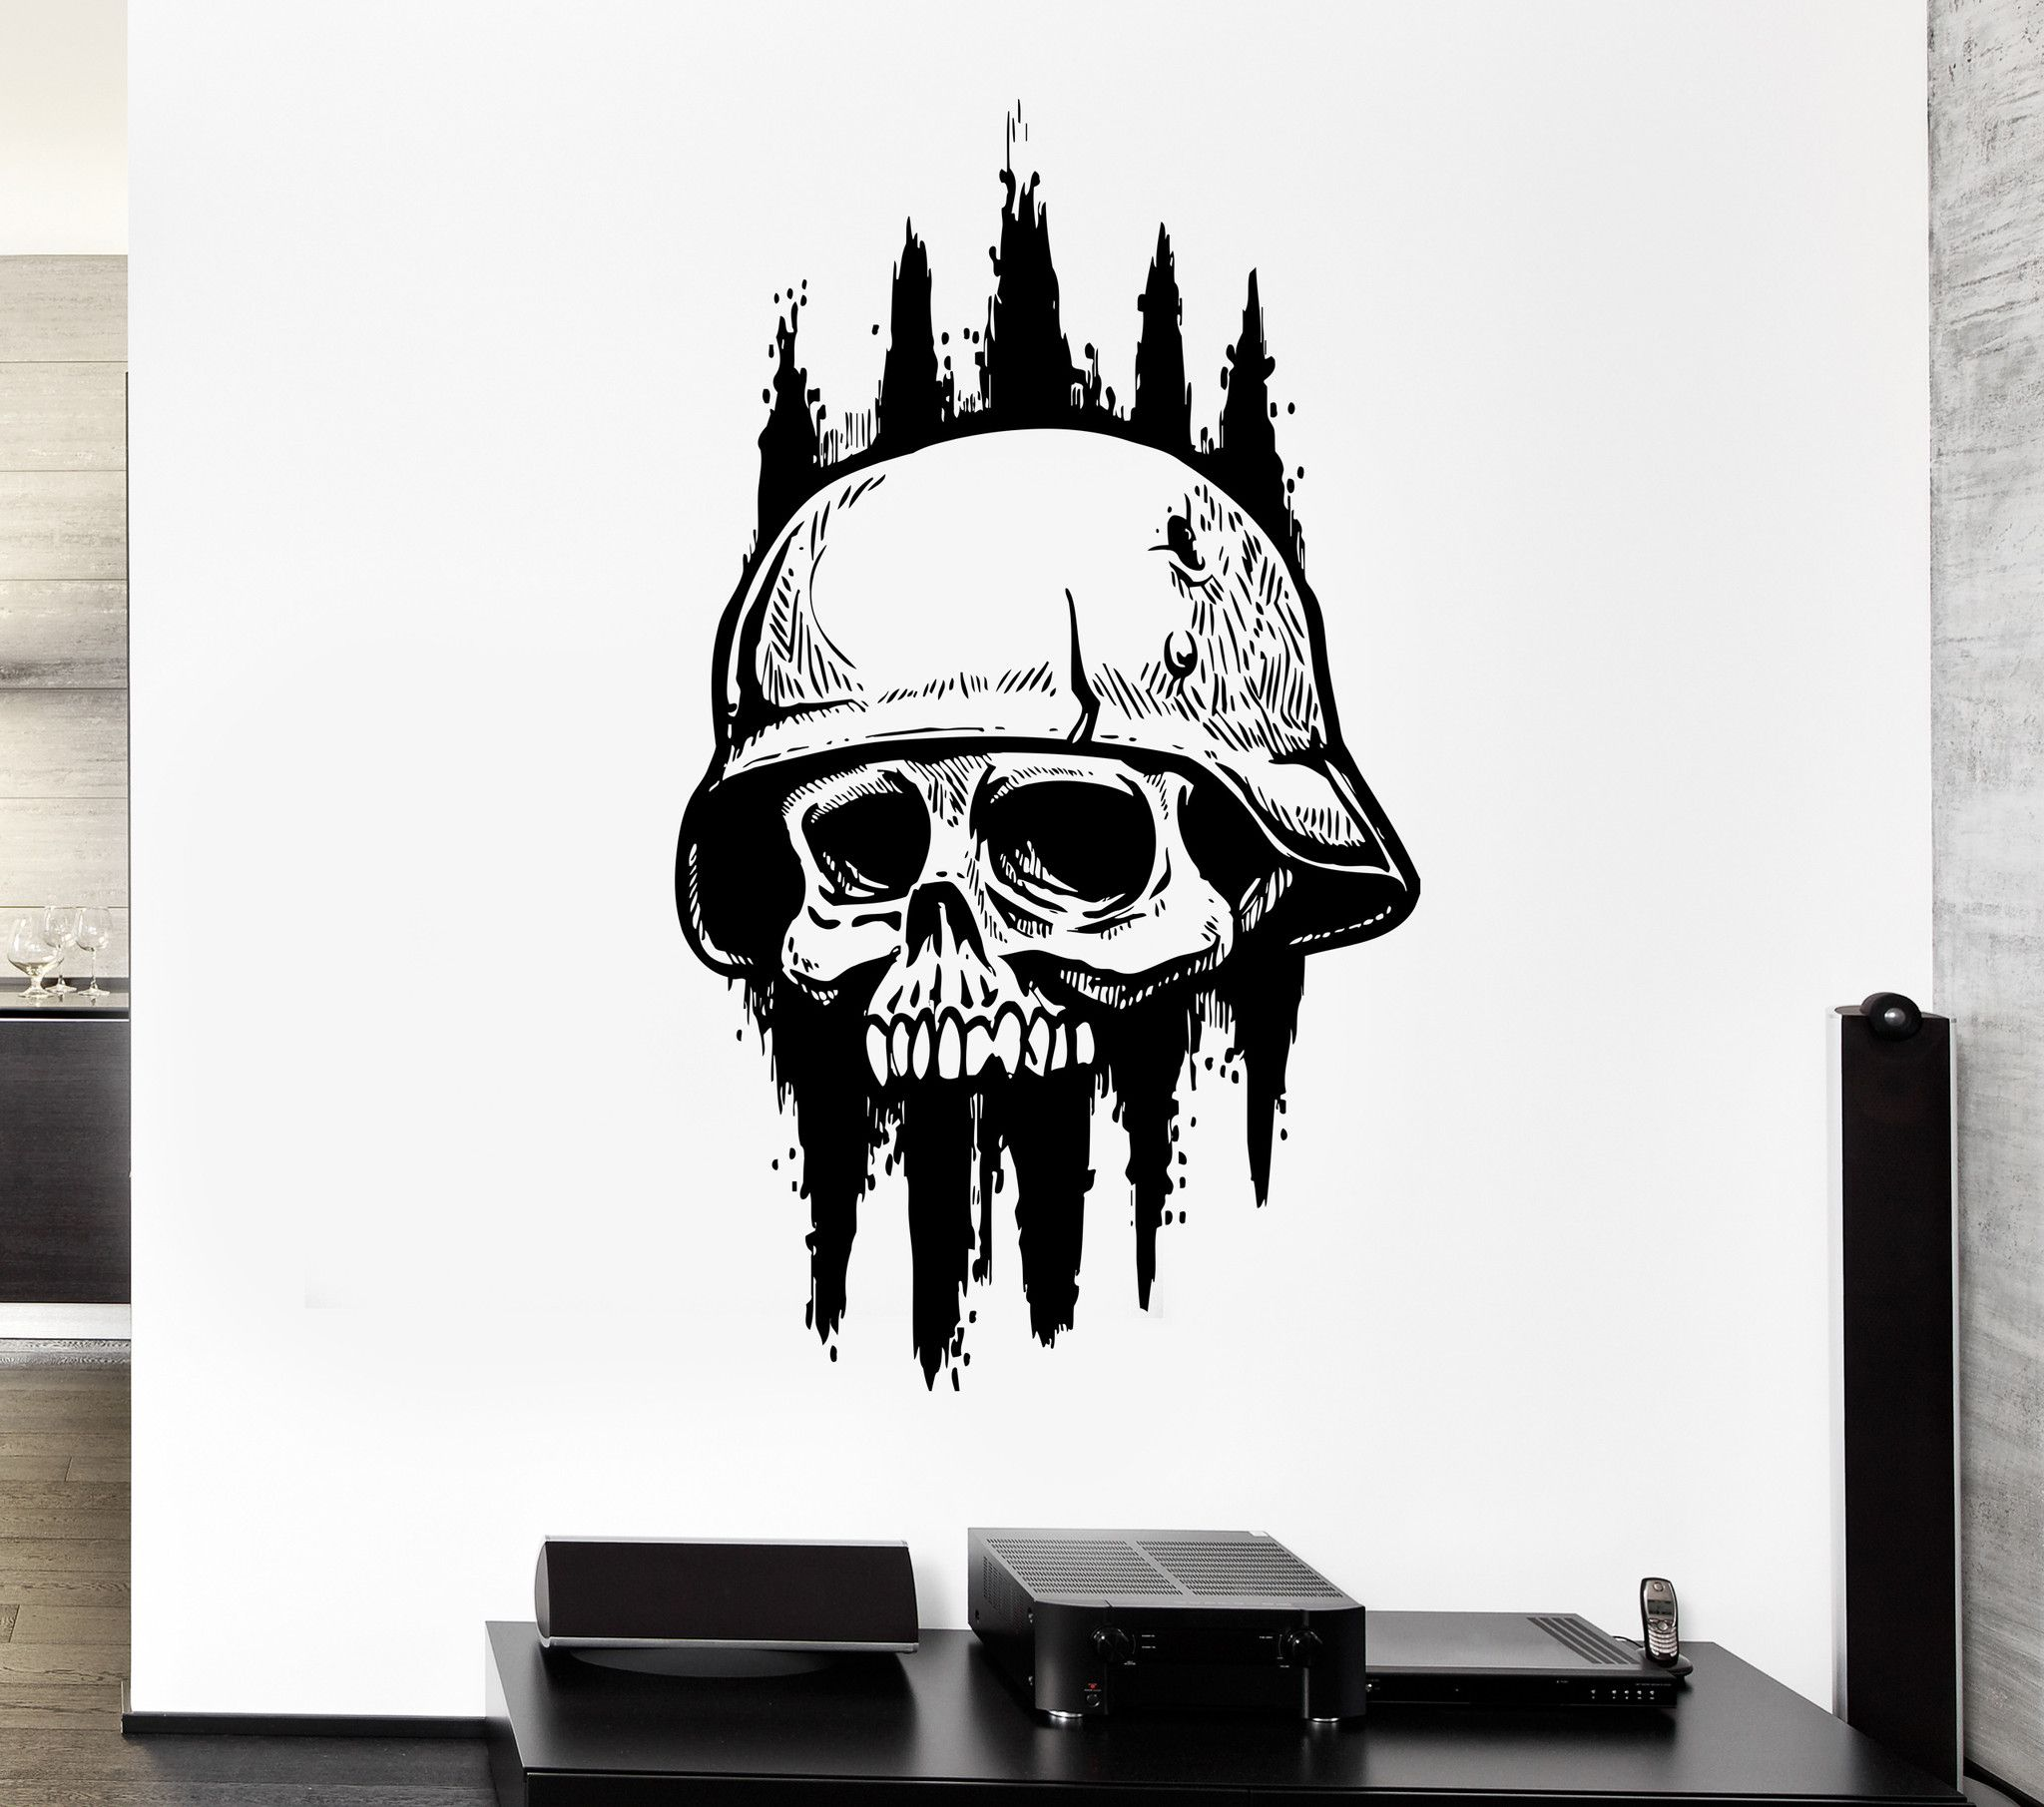 wall decal skull skeleton army soldier dead death zombie vinyl wall decal skull skeleton army soldier dead death zombie vinyl decal ed340